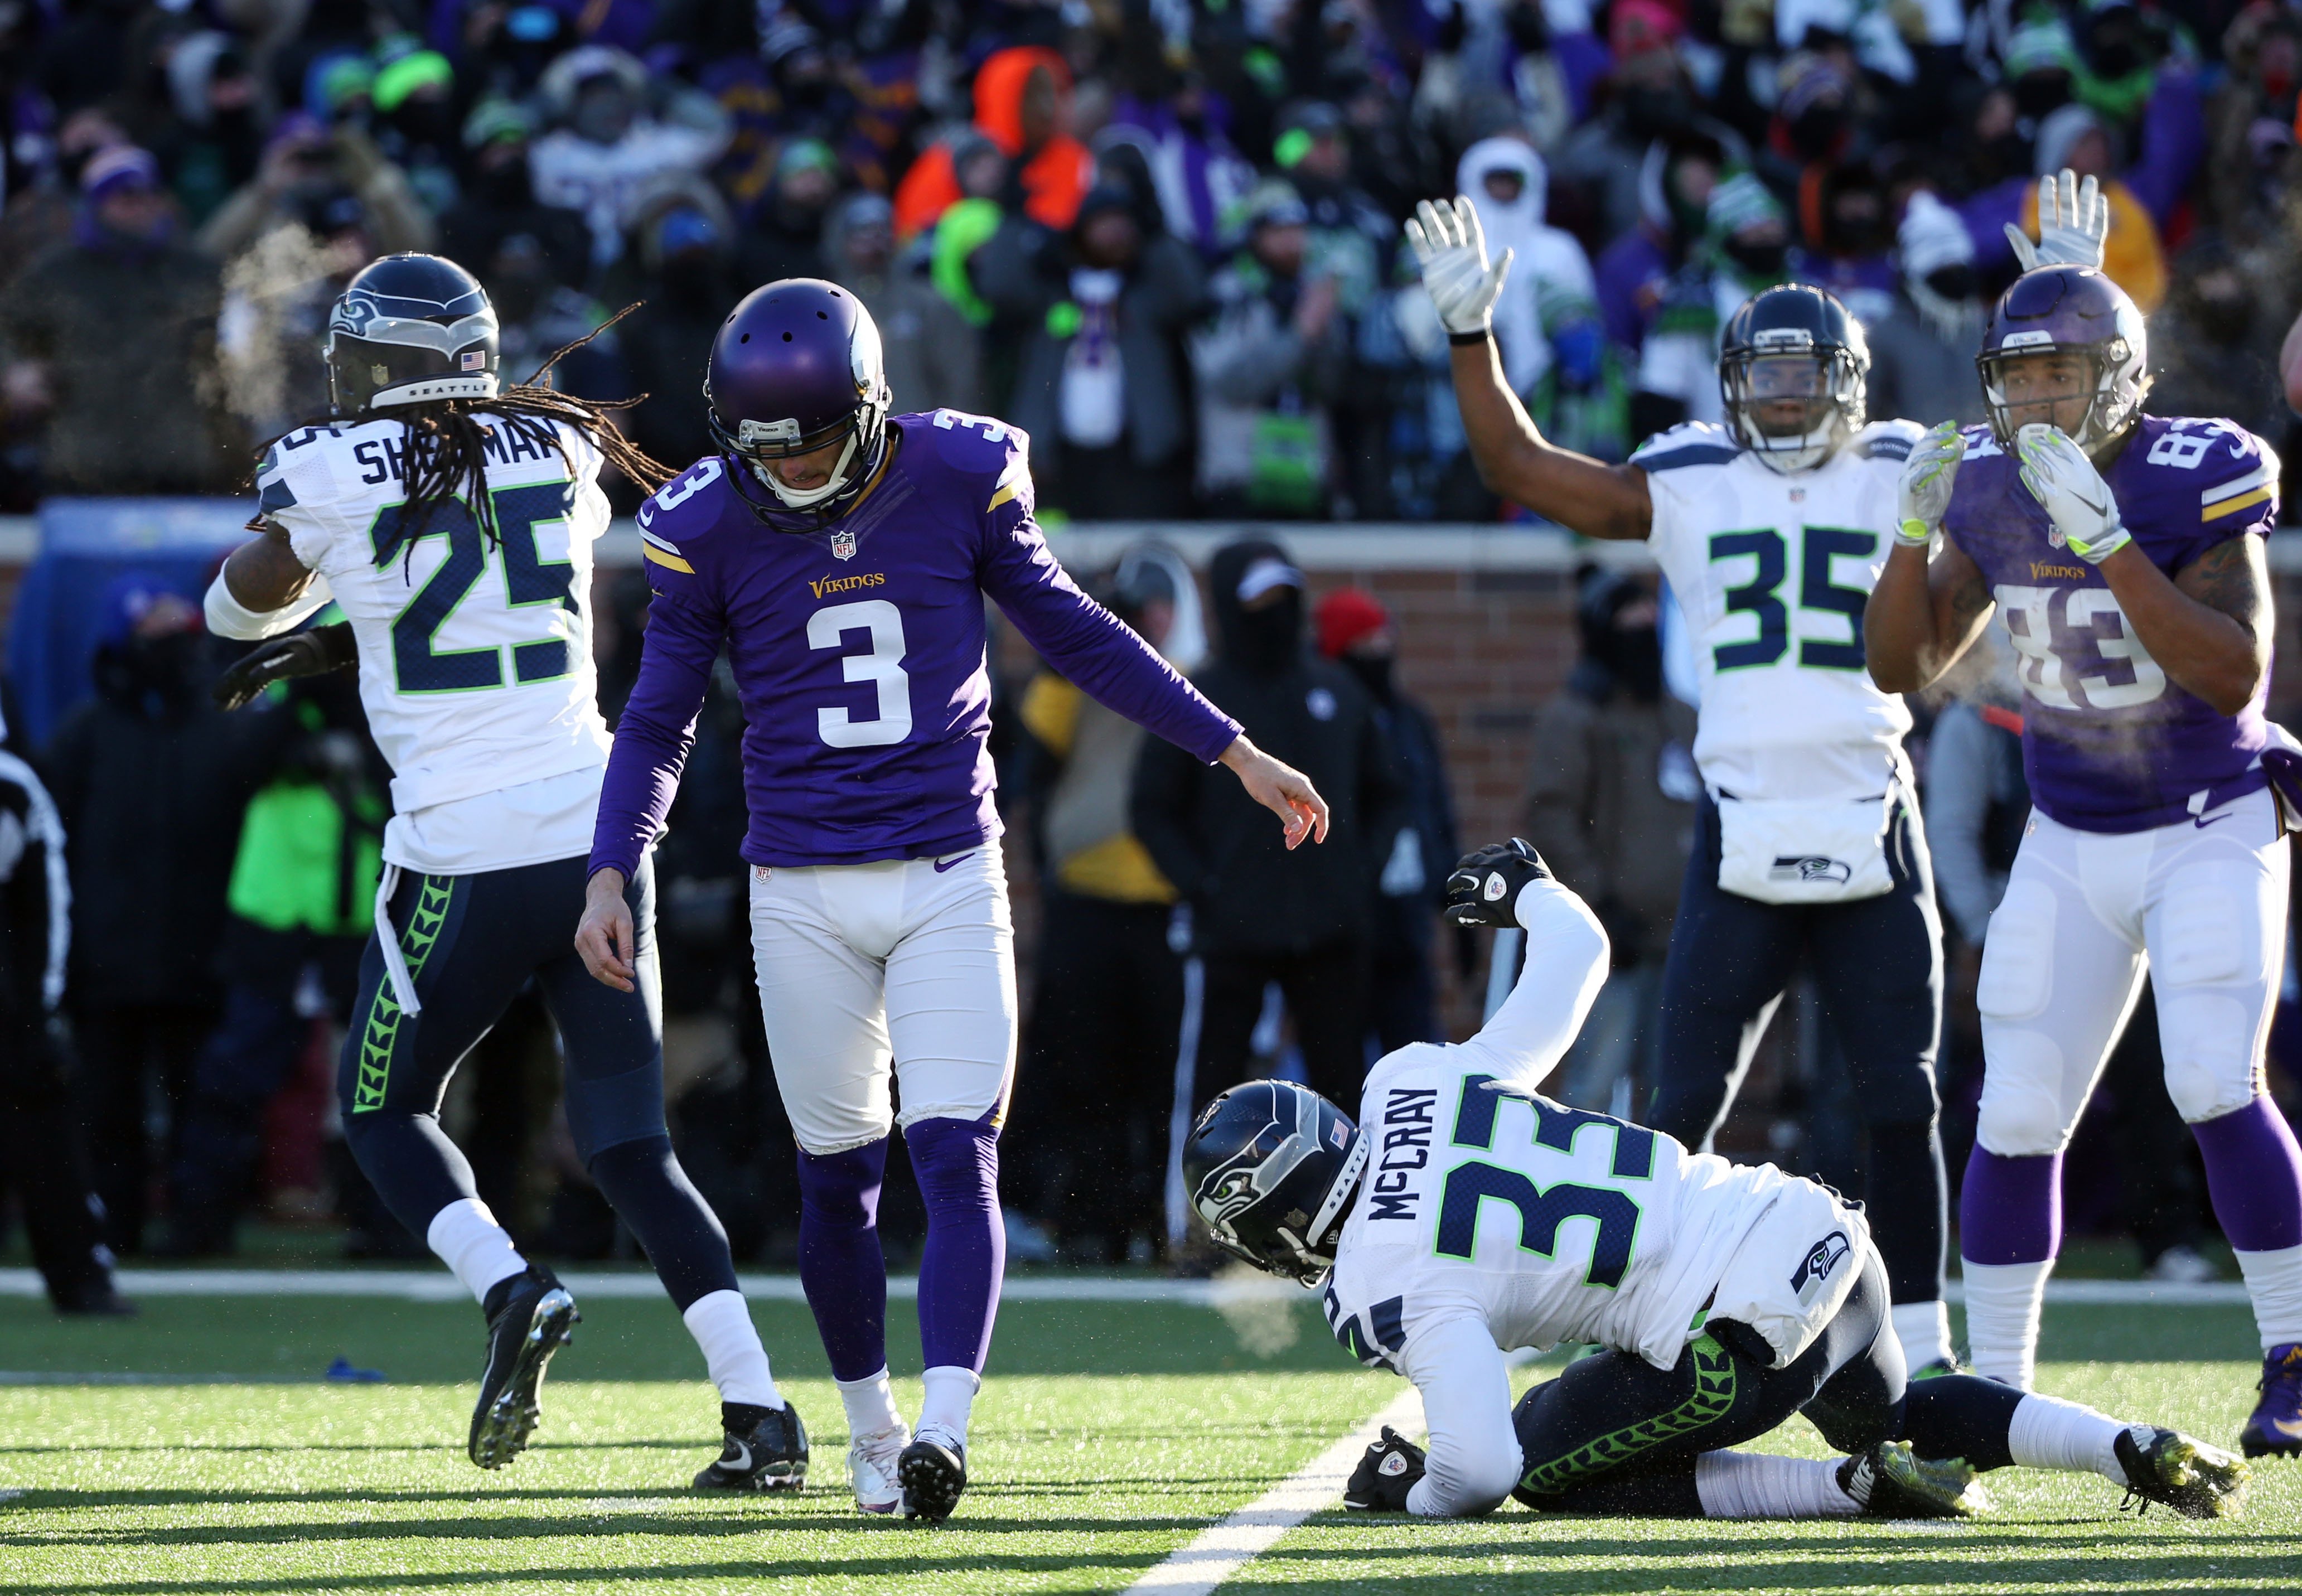 Blair Walsh of the Vikings after he missed the game-winning field goal.